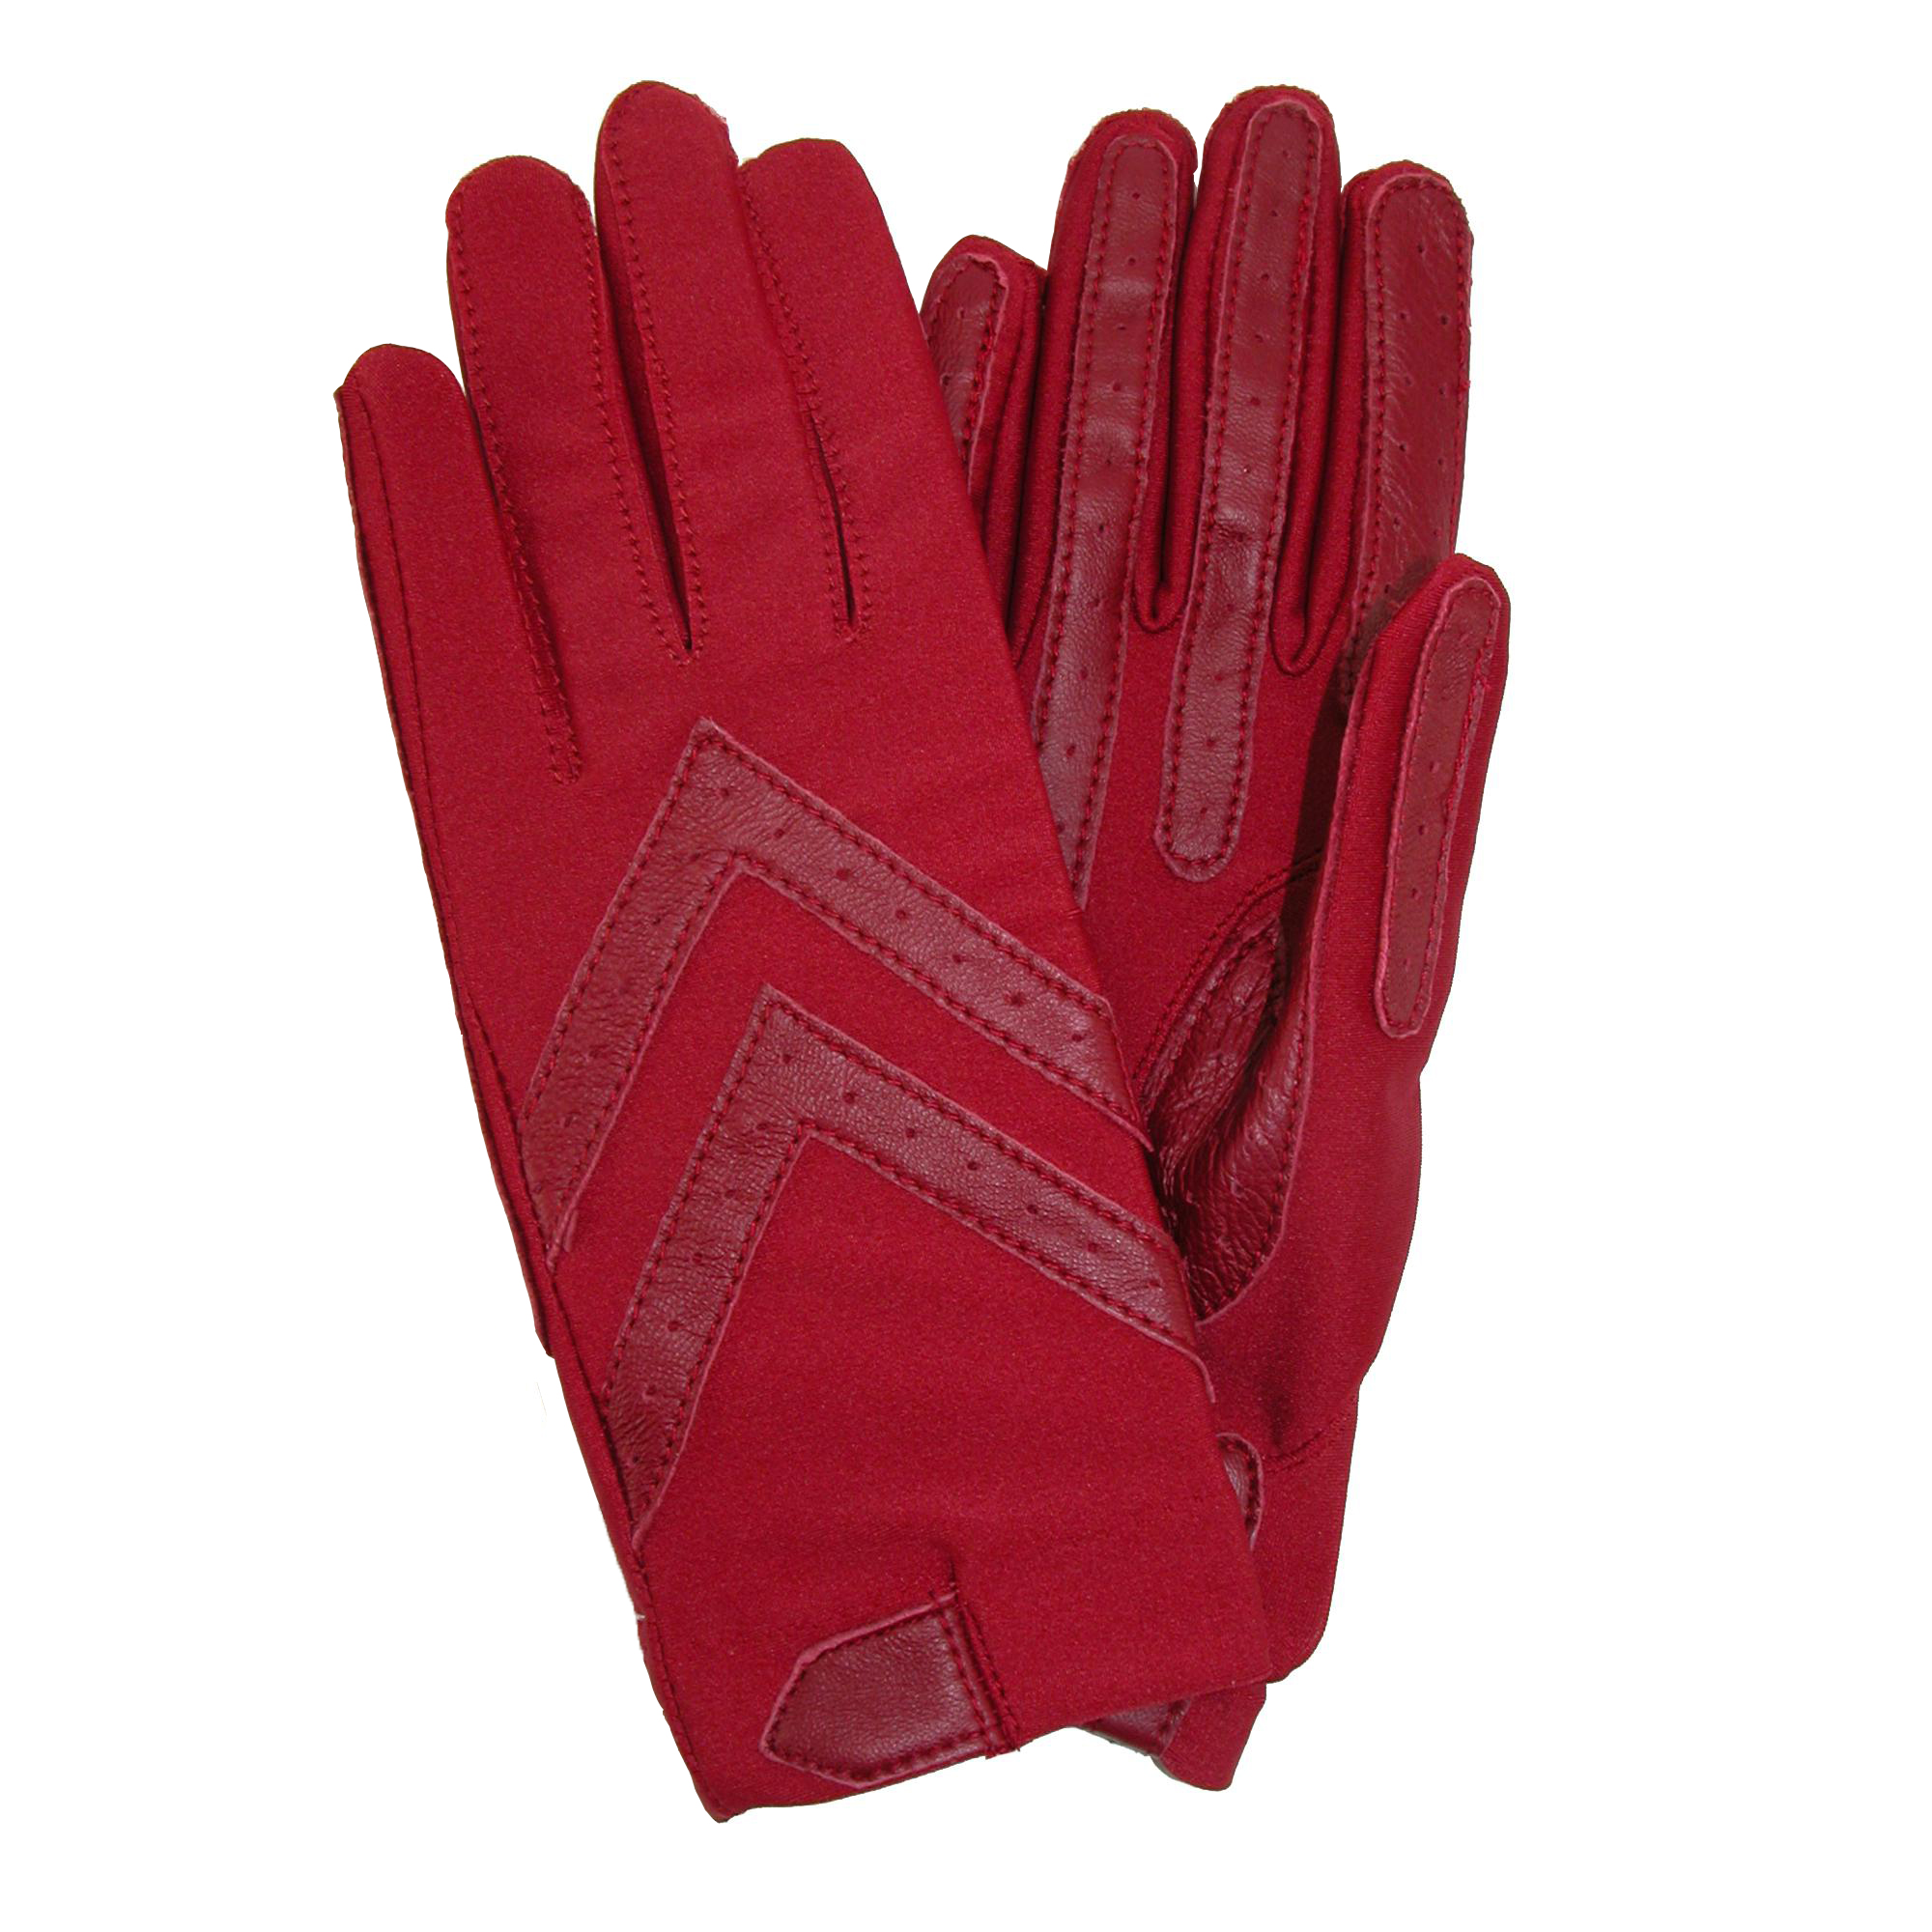 Isotoner_Womens_Unlined_Leather_Palm_Driving_Gloves_